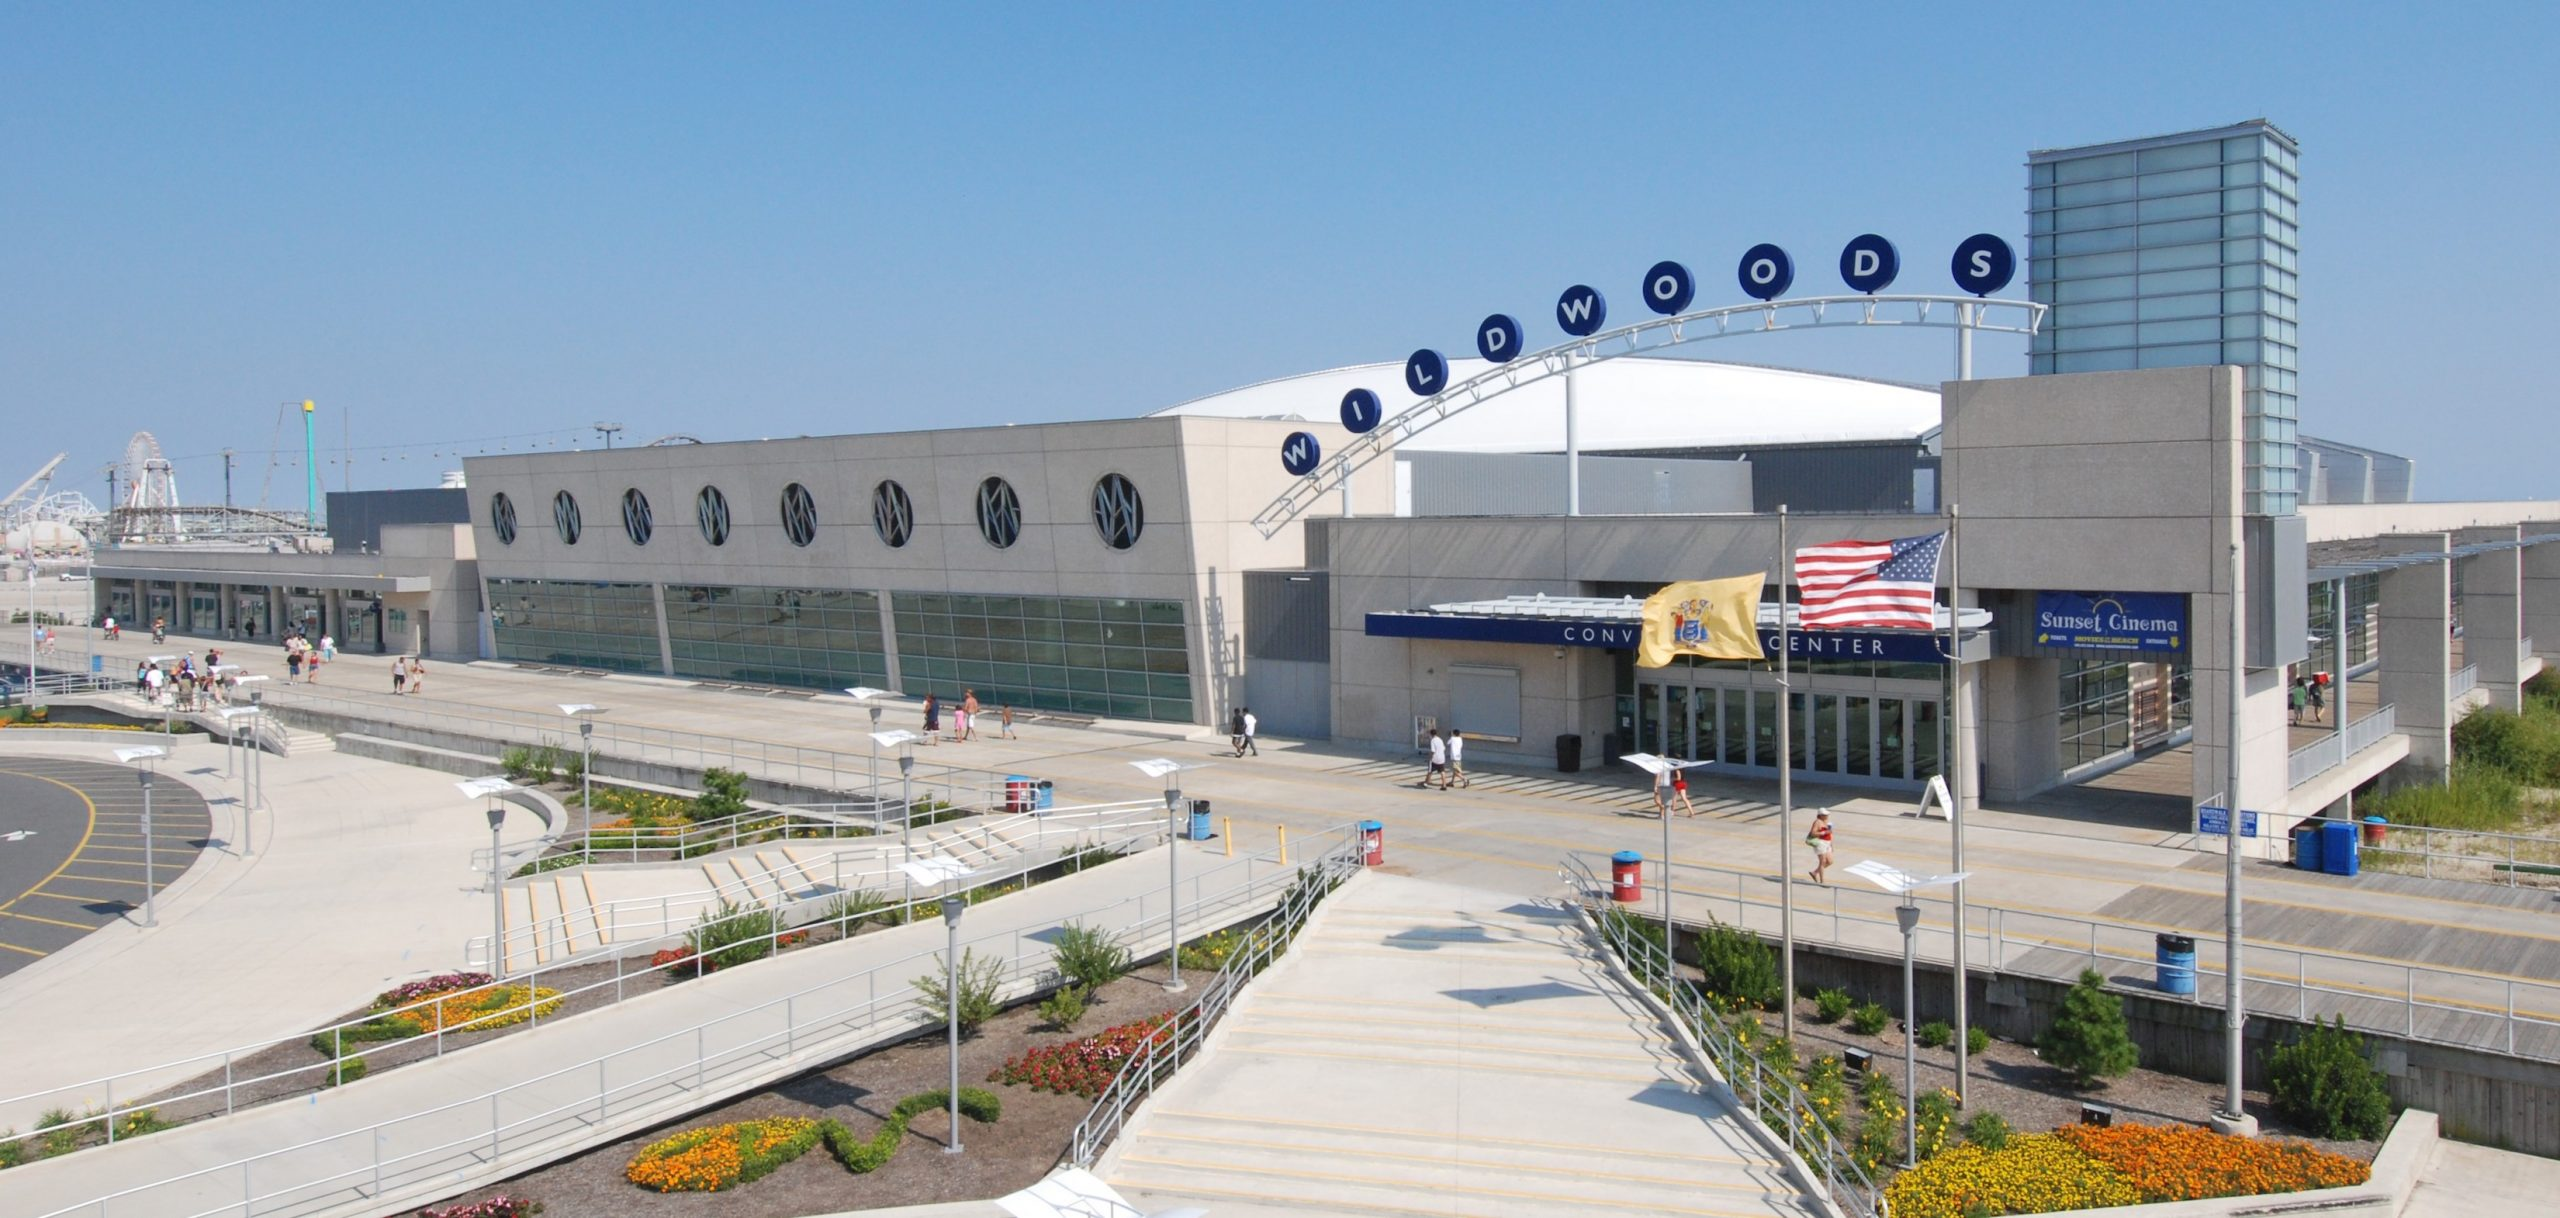 TheWildwoodsConventionCenter